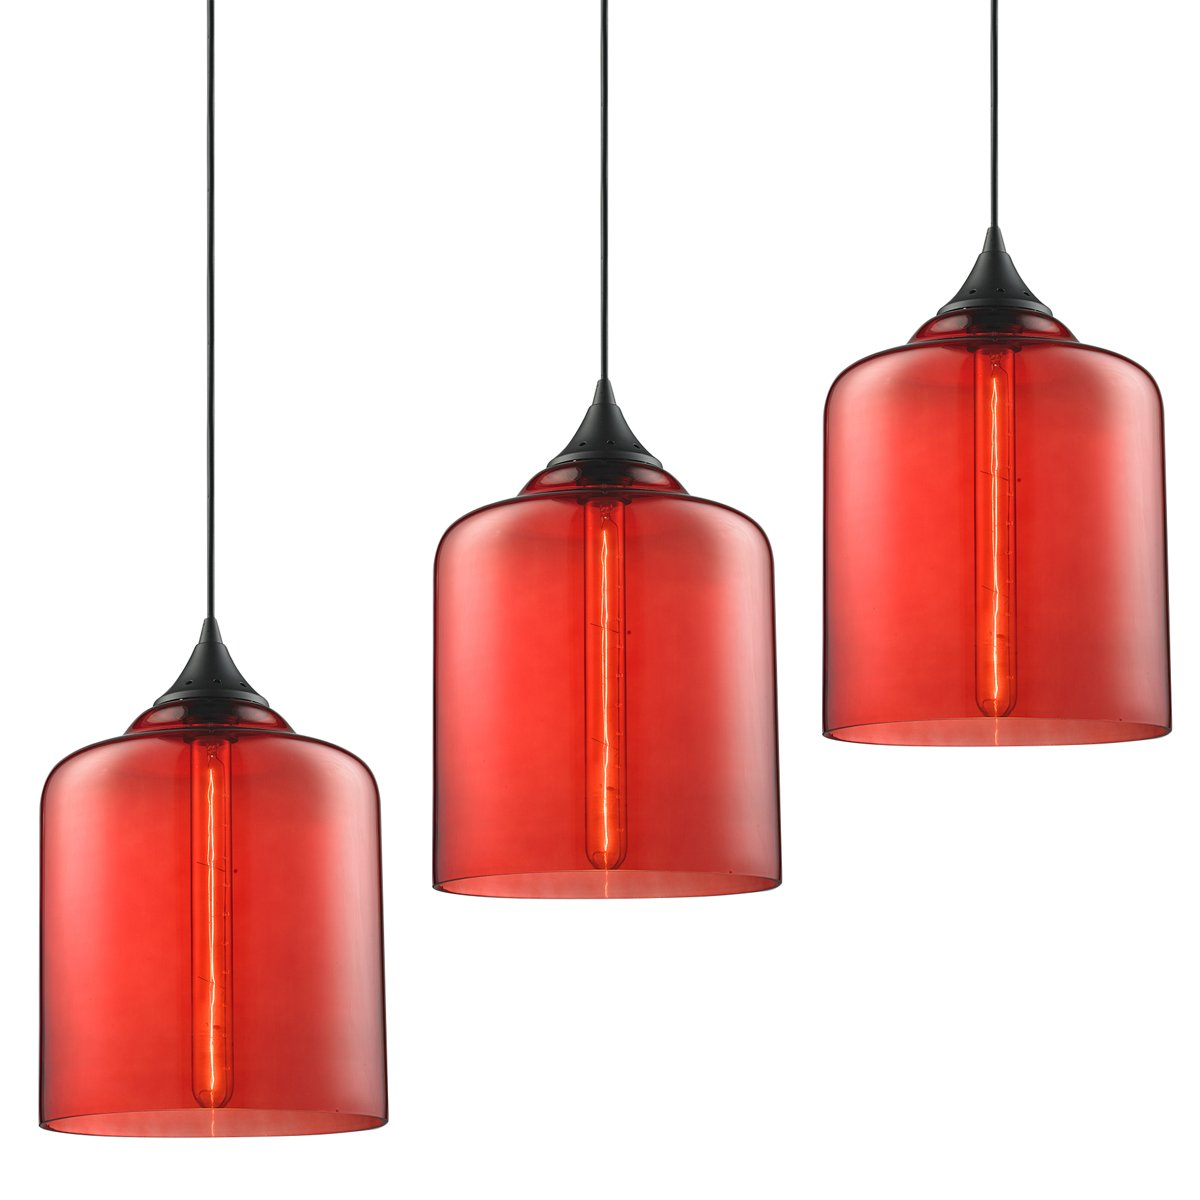 3-Pack Modern Industrial Vintage Glass Globe Pendant Light - MKLOT Minimalist Eco-Power Edison Style 7.09'' Wide Hanging Chandelier Ceiling Lighting Mounted Fixture with Red Glass